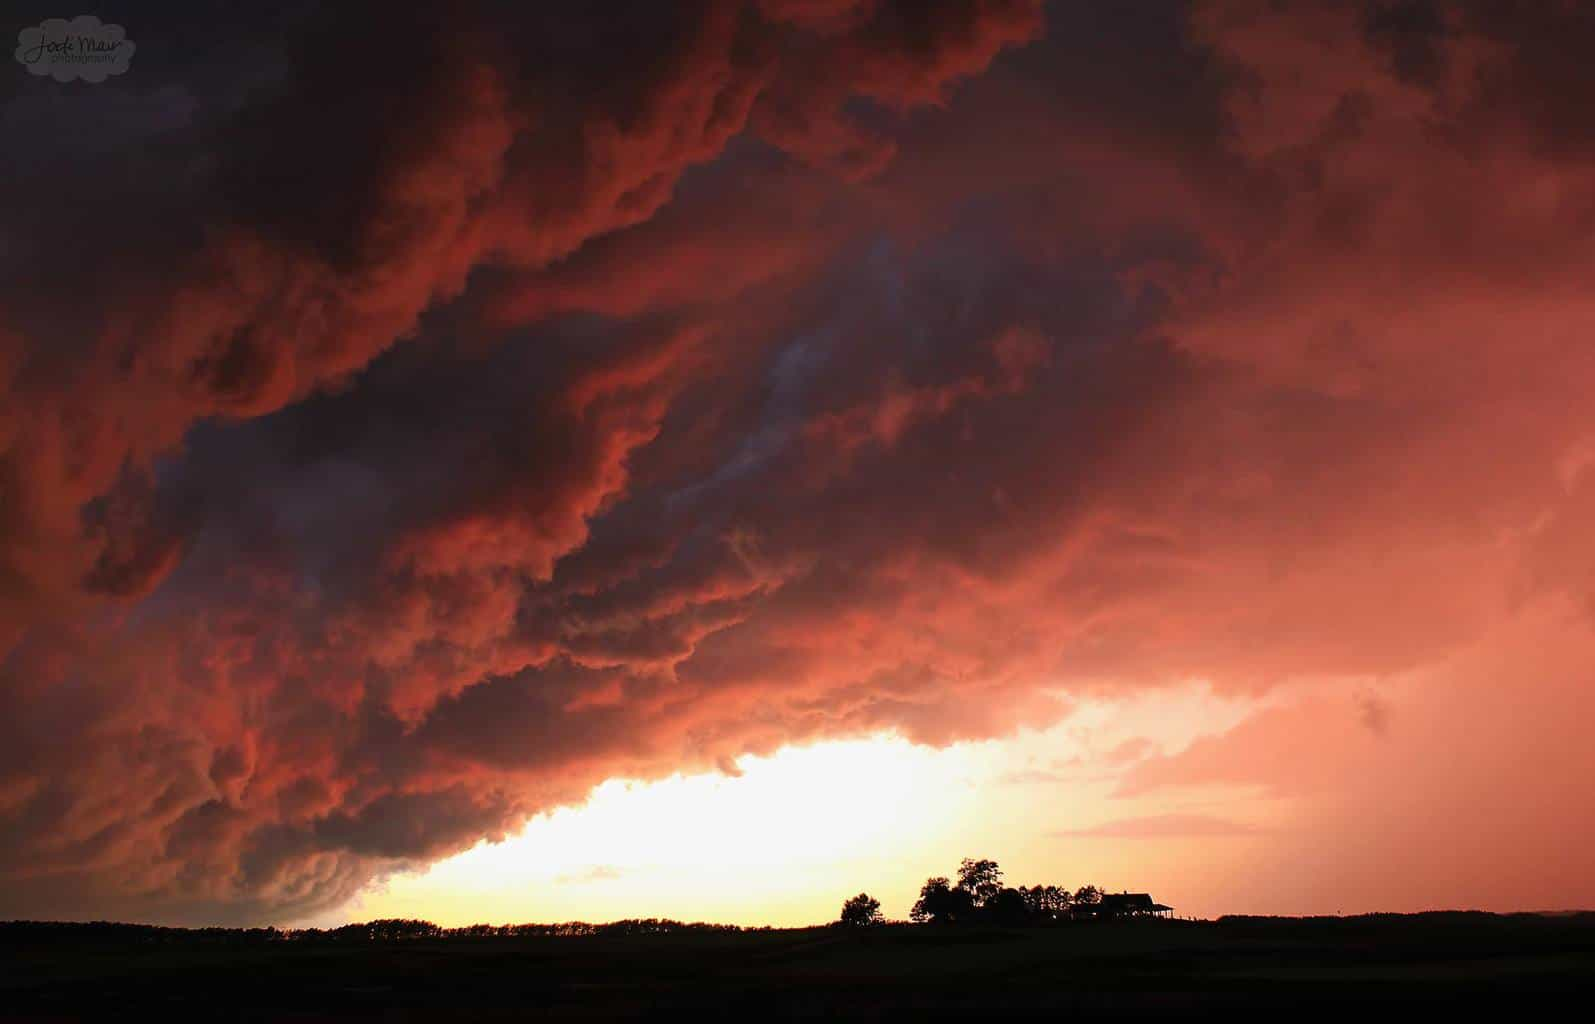 A stormy sunset near Sugar Grove, Illinois on July 26, 2013. One of the best I have seen around here in a long, long time.